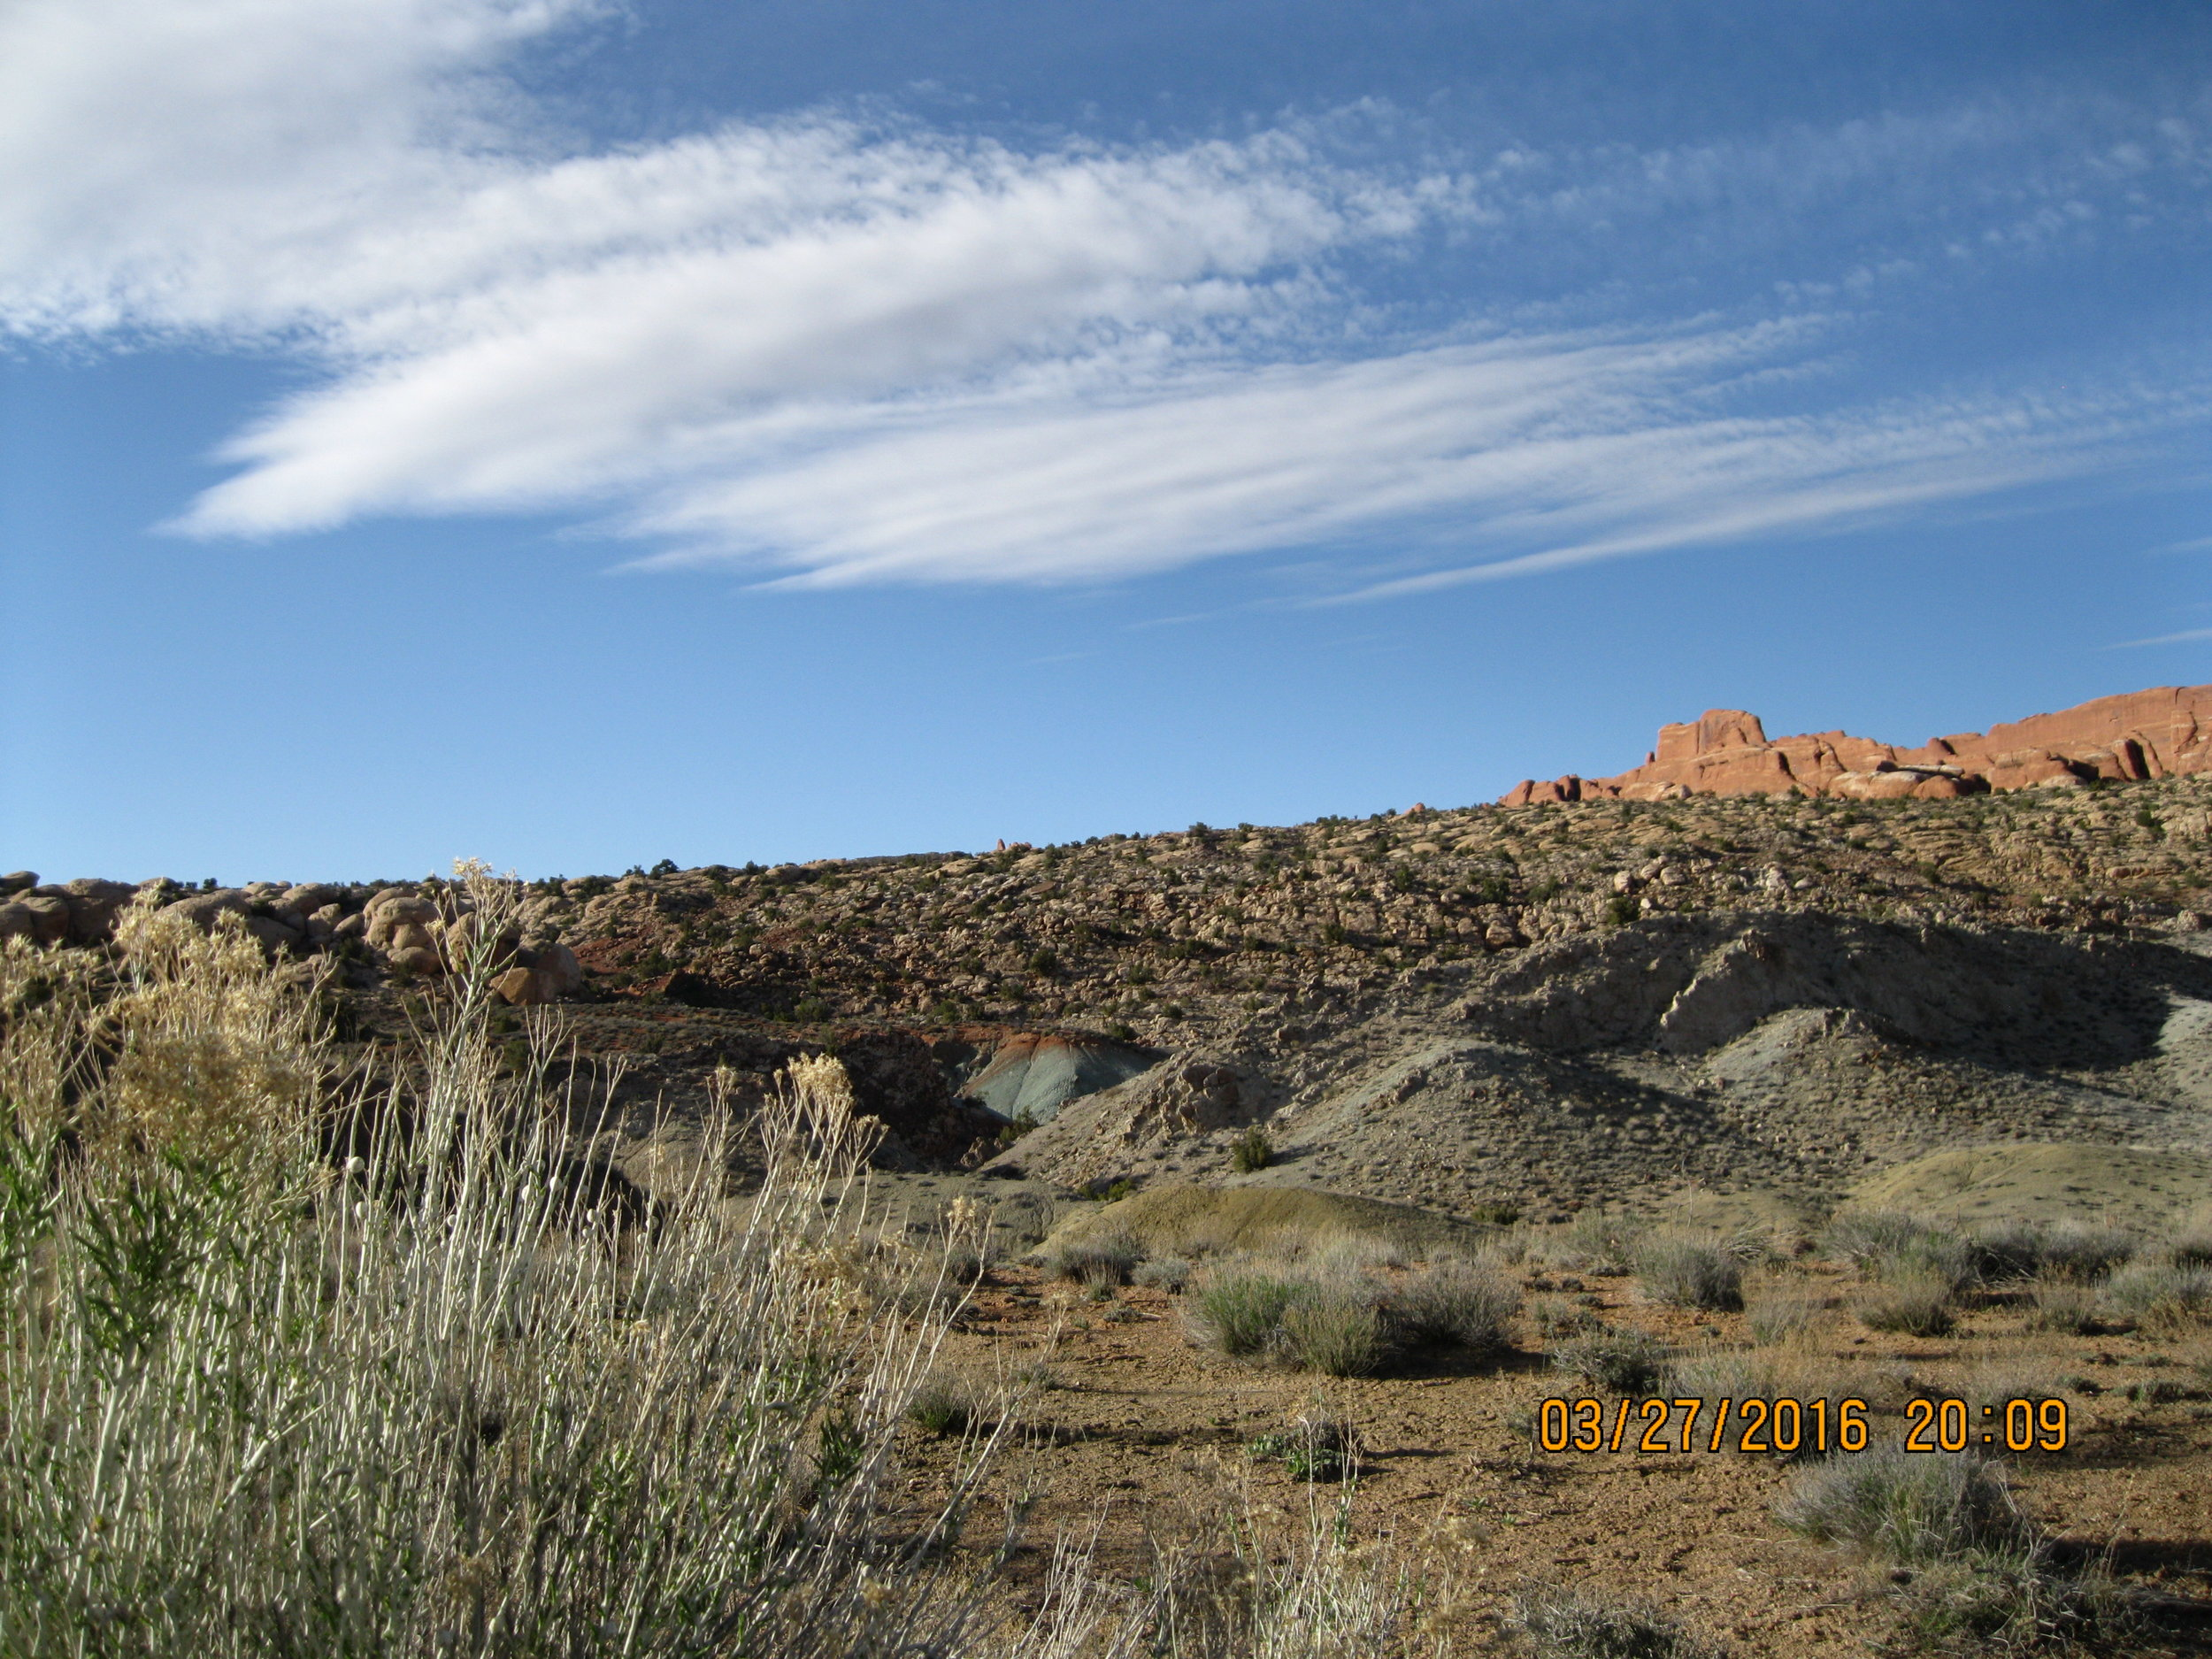 Picture from sipra's trip to the Southwest.